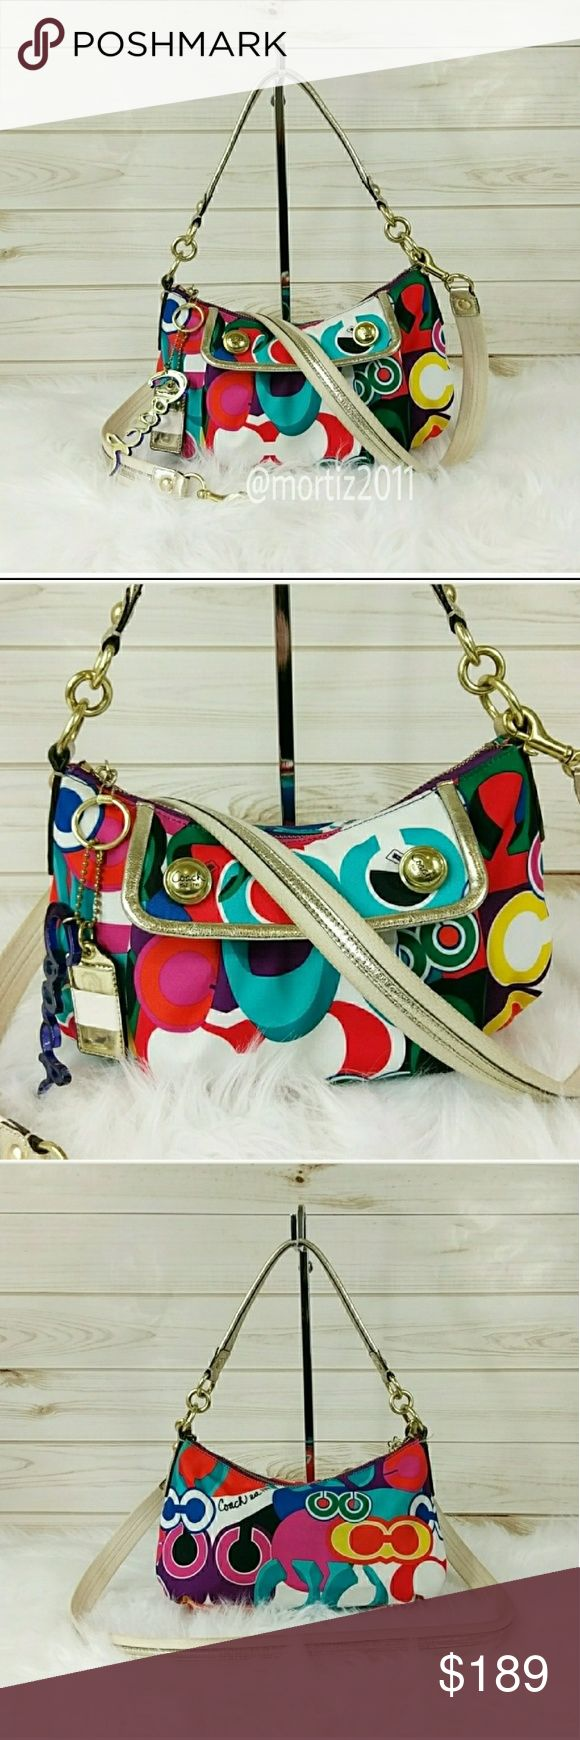 Coach Poppy Pop C Cross Body Coach Poppy Pop C Cross Body This charming poppy pop C cross body purse is so fun to look at. Made with an assortment of bright colors and trimmed with metallic gold leather. It has a main body pouch with a smaller snap closures pouch in front. Like new.  (#A725) Coach Bags Crossbody Bags